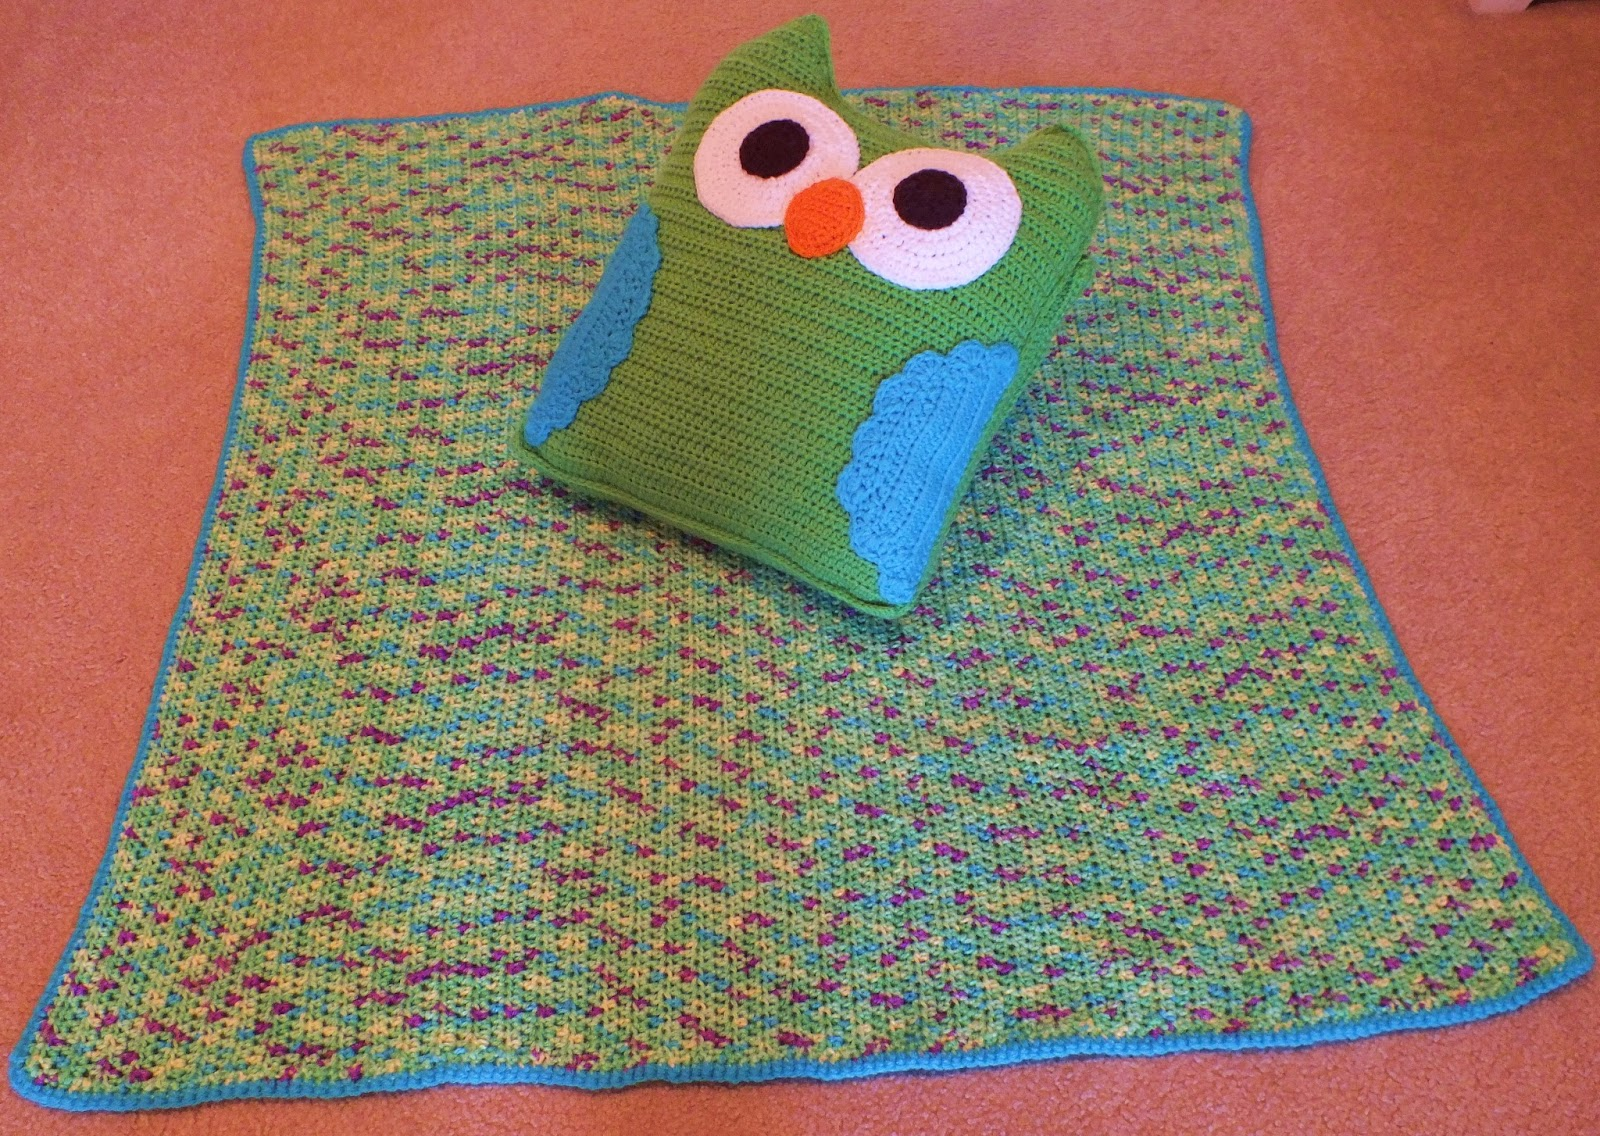 Connies Spot? Crocheting, Crafting, Creating!: Nightie ...